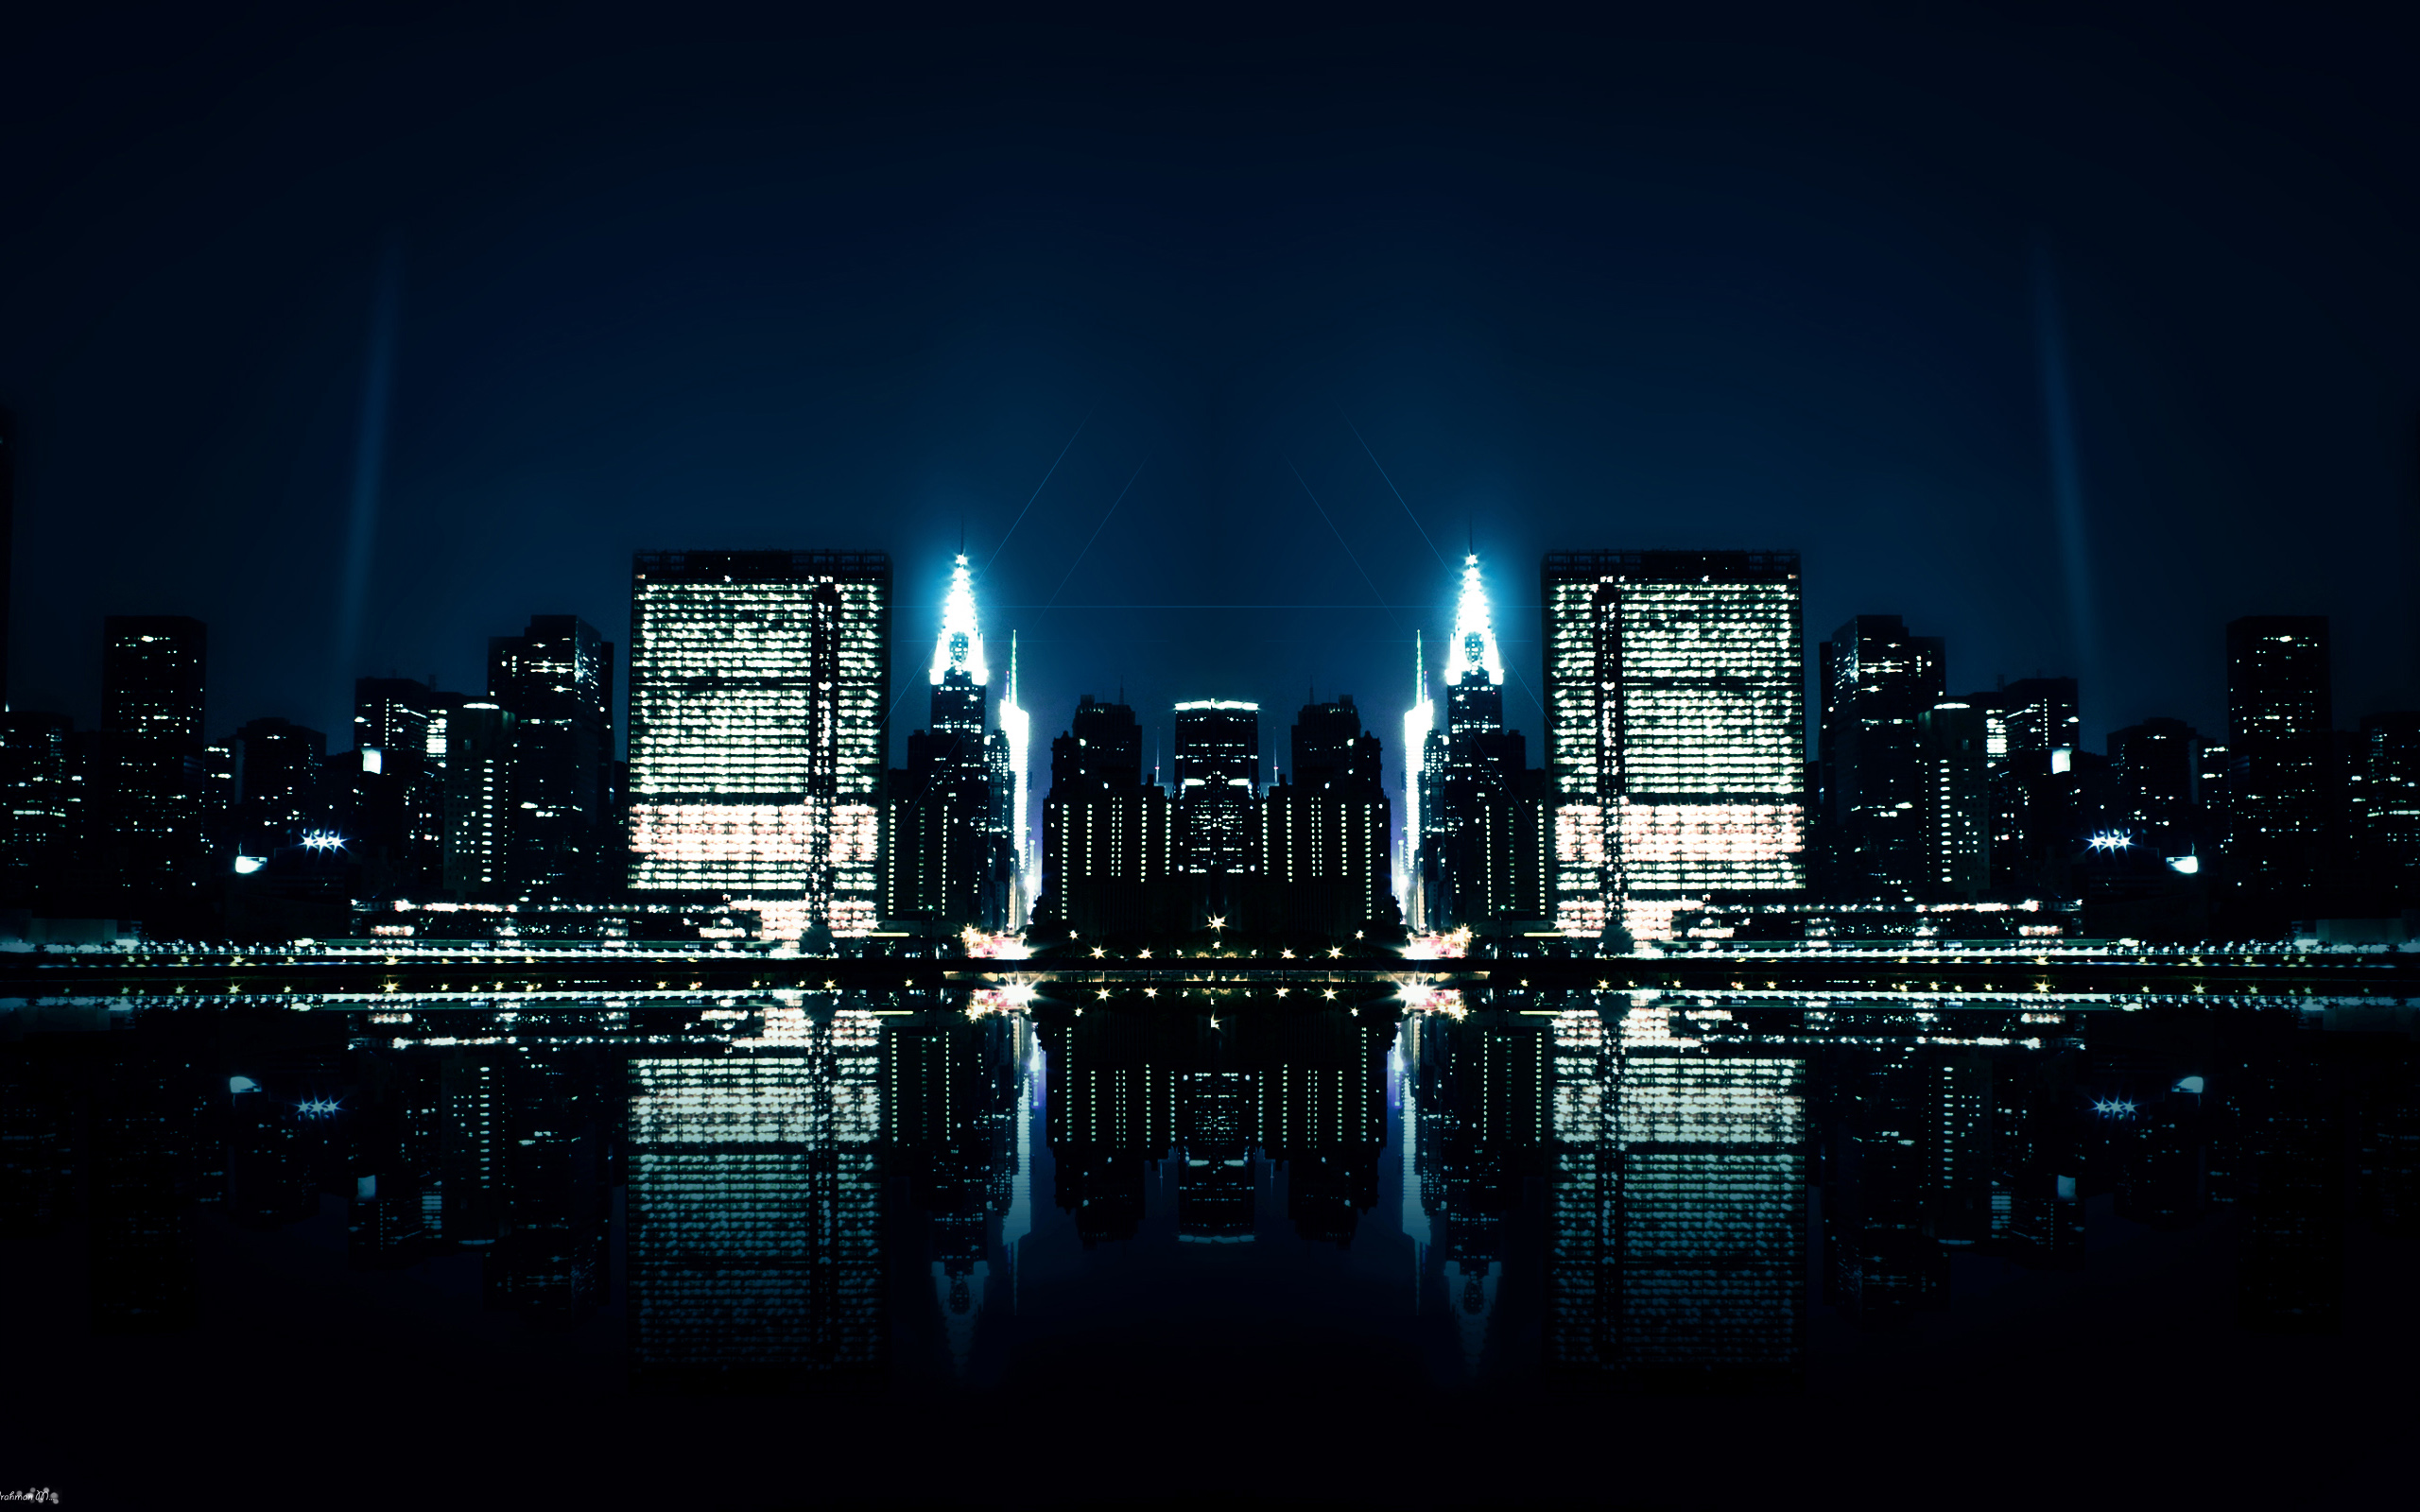 City Night Reflections Wallpaper